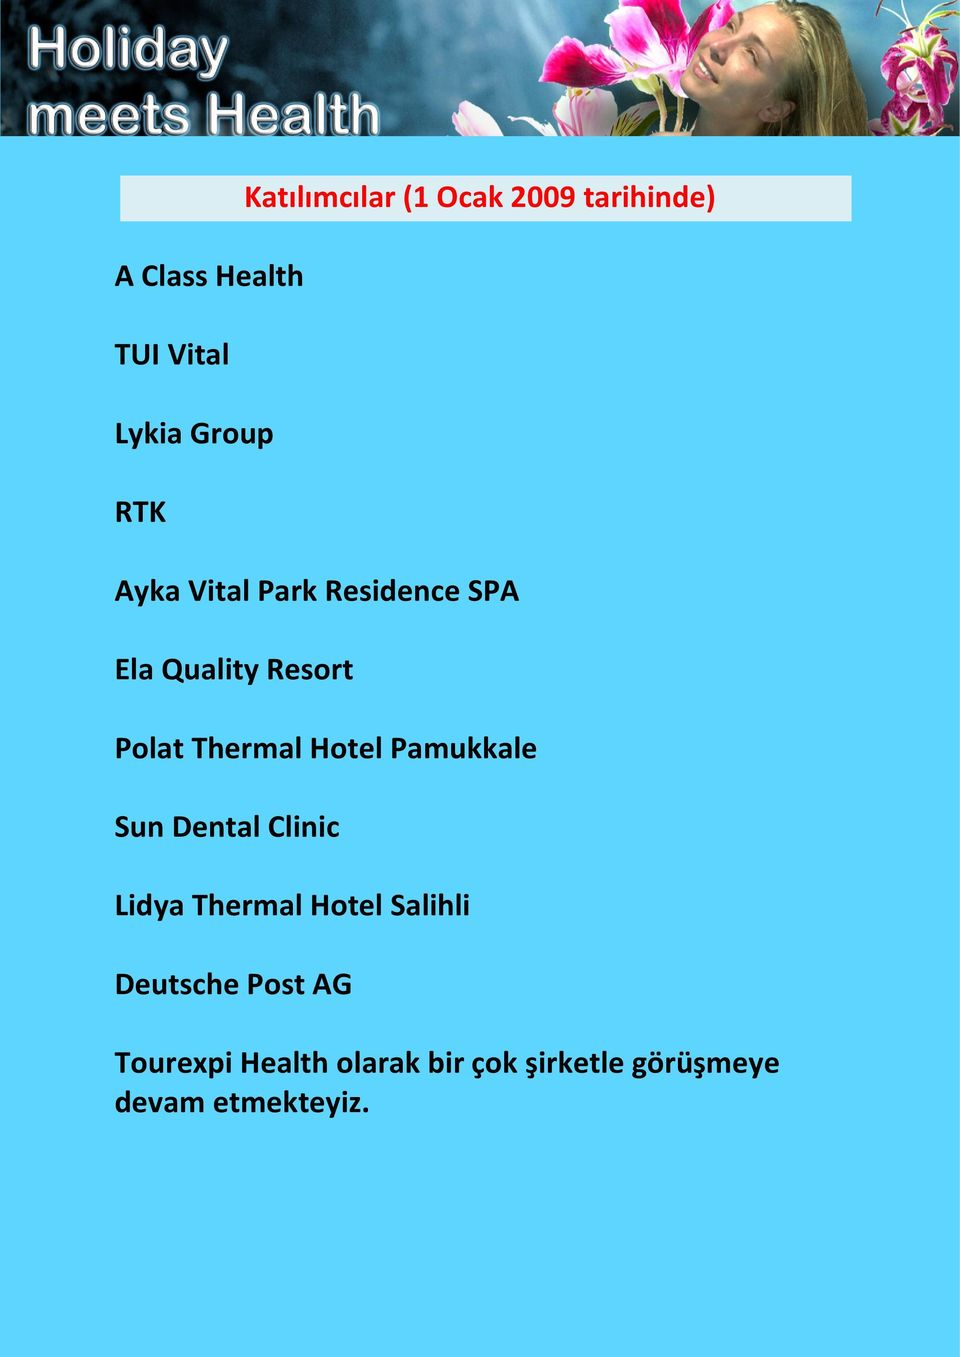 Thermal Hotel Pamukkale Sun Dental Clinic Lidya Thermal Hotel Salihli